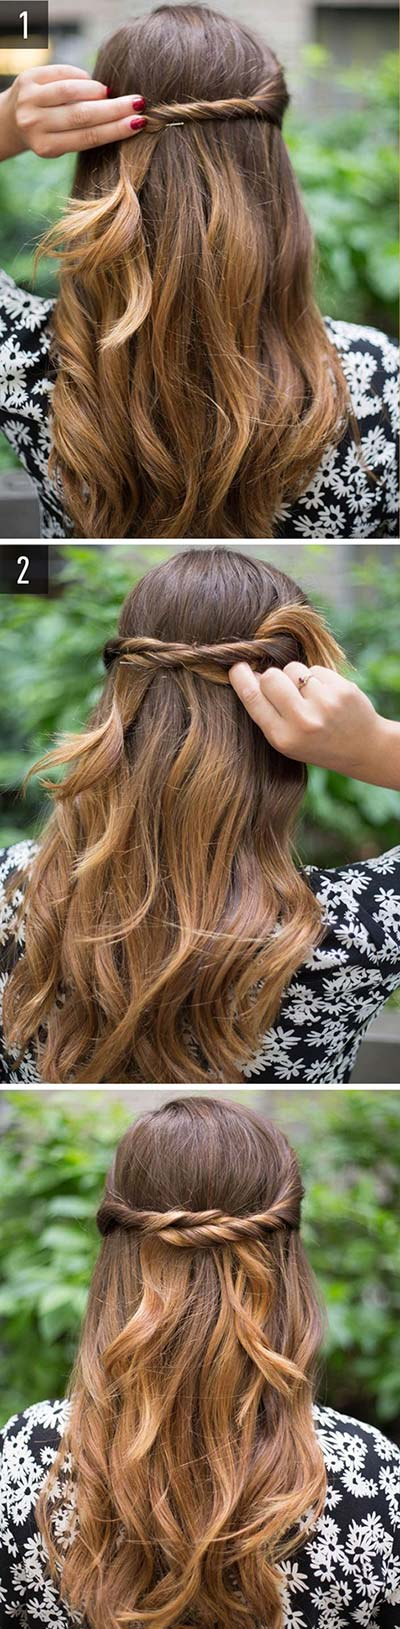 half-up-half-down-hairstyles-3